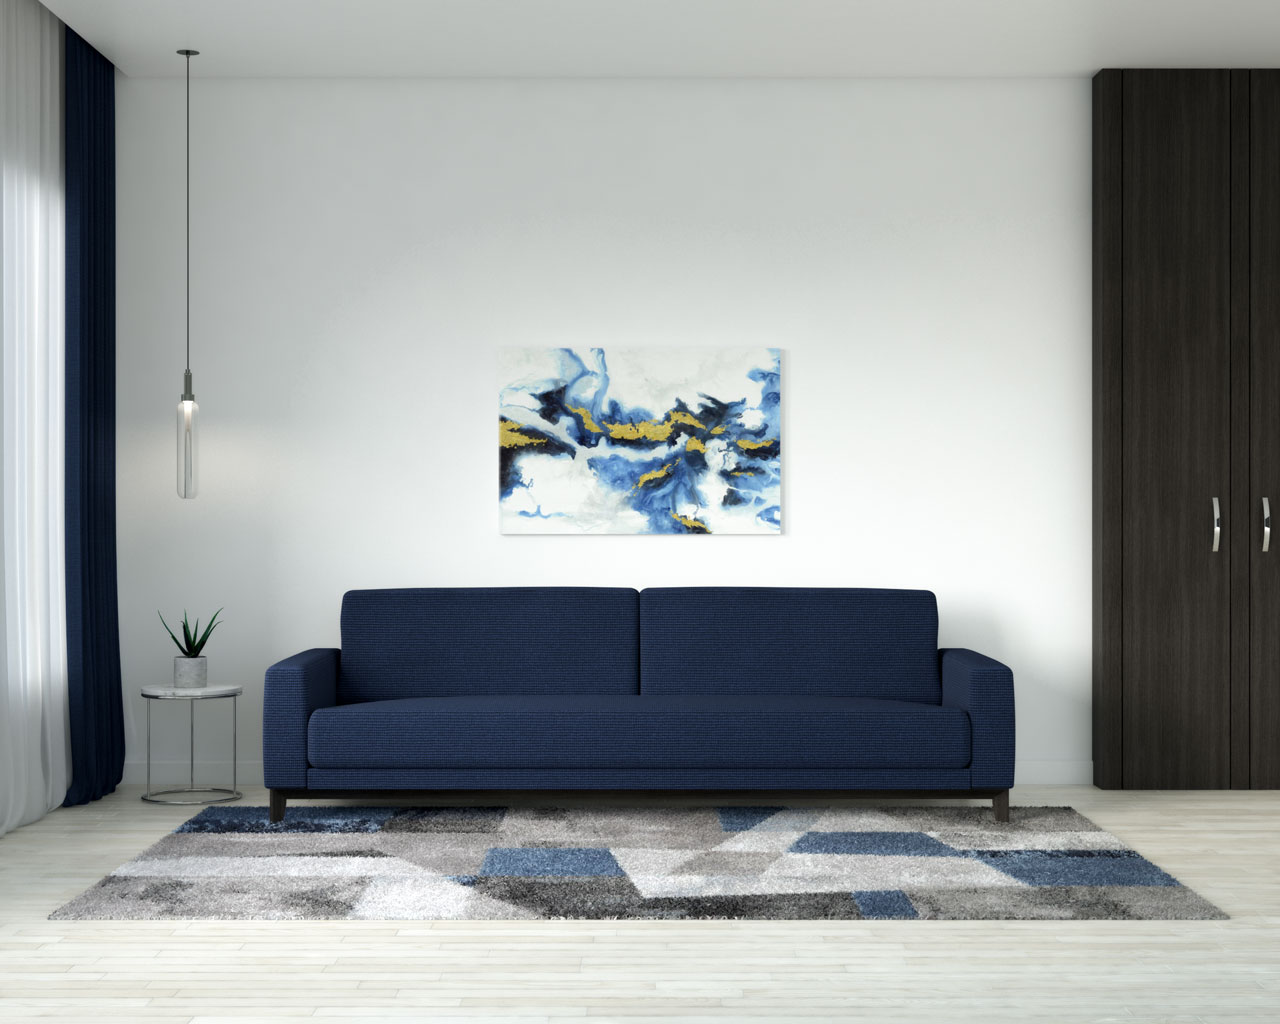 White wall with navy couch